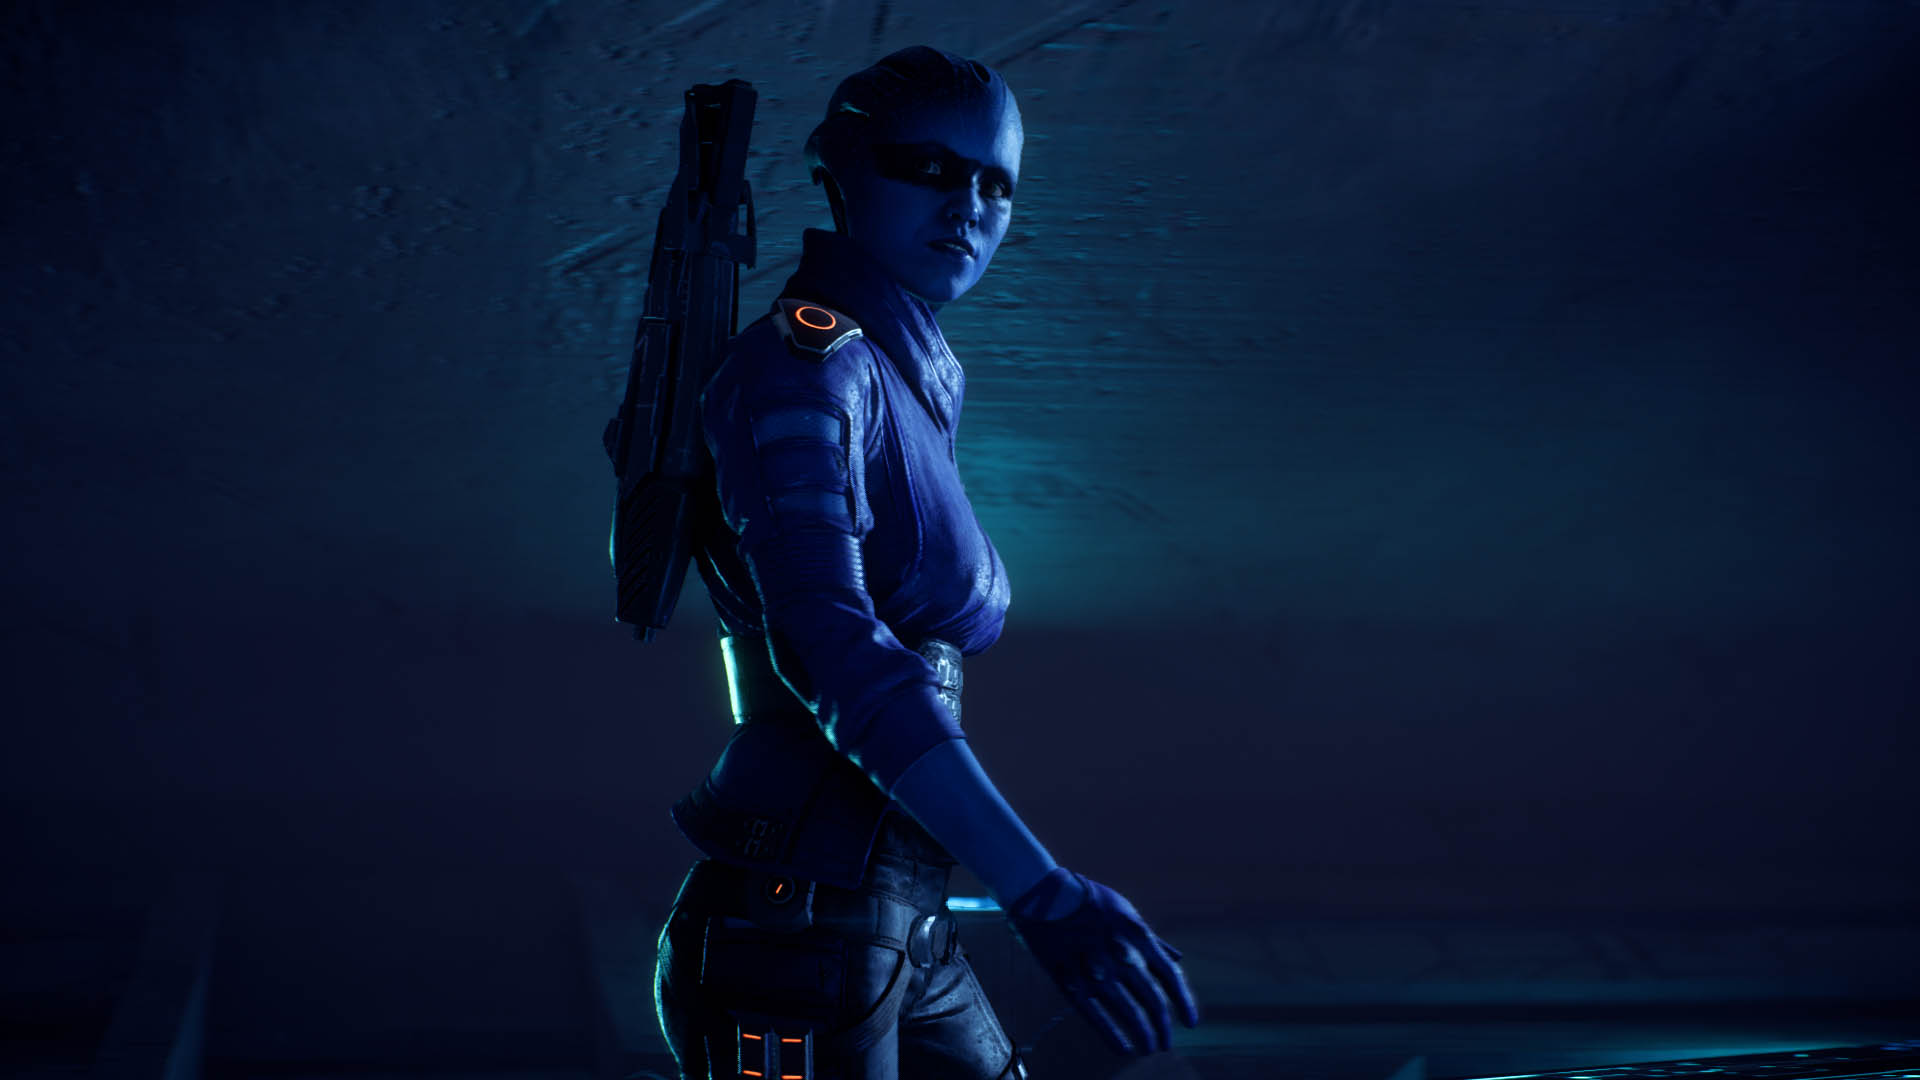 Andromeda Missed Opportunities But Still Mass Effect Pc Game